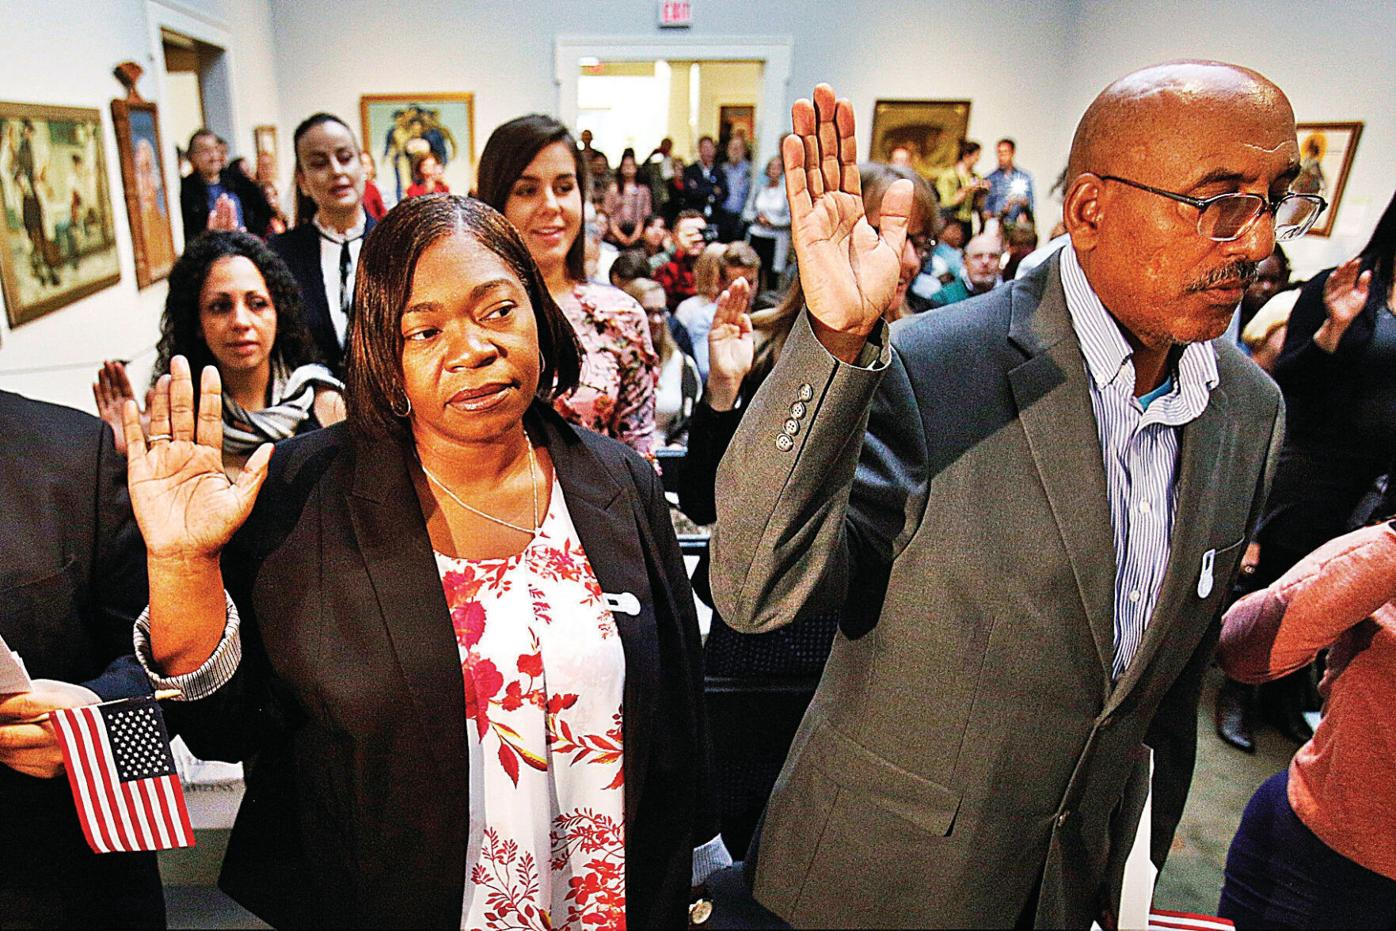 America grows stronger with 21 new citizens: 'We are more alike than we are different'